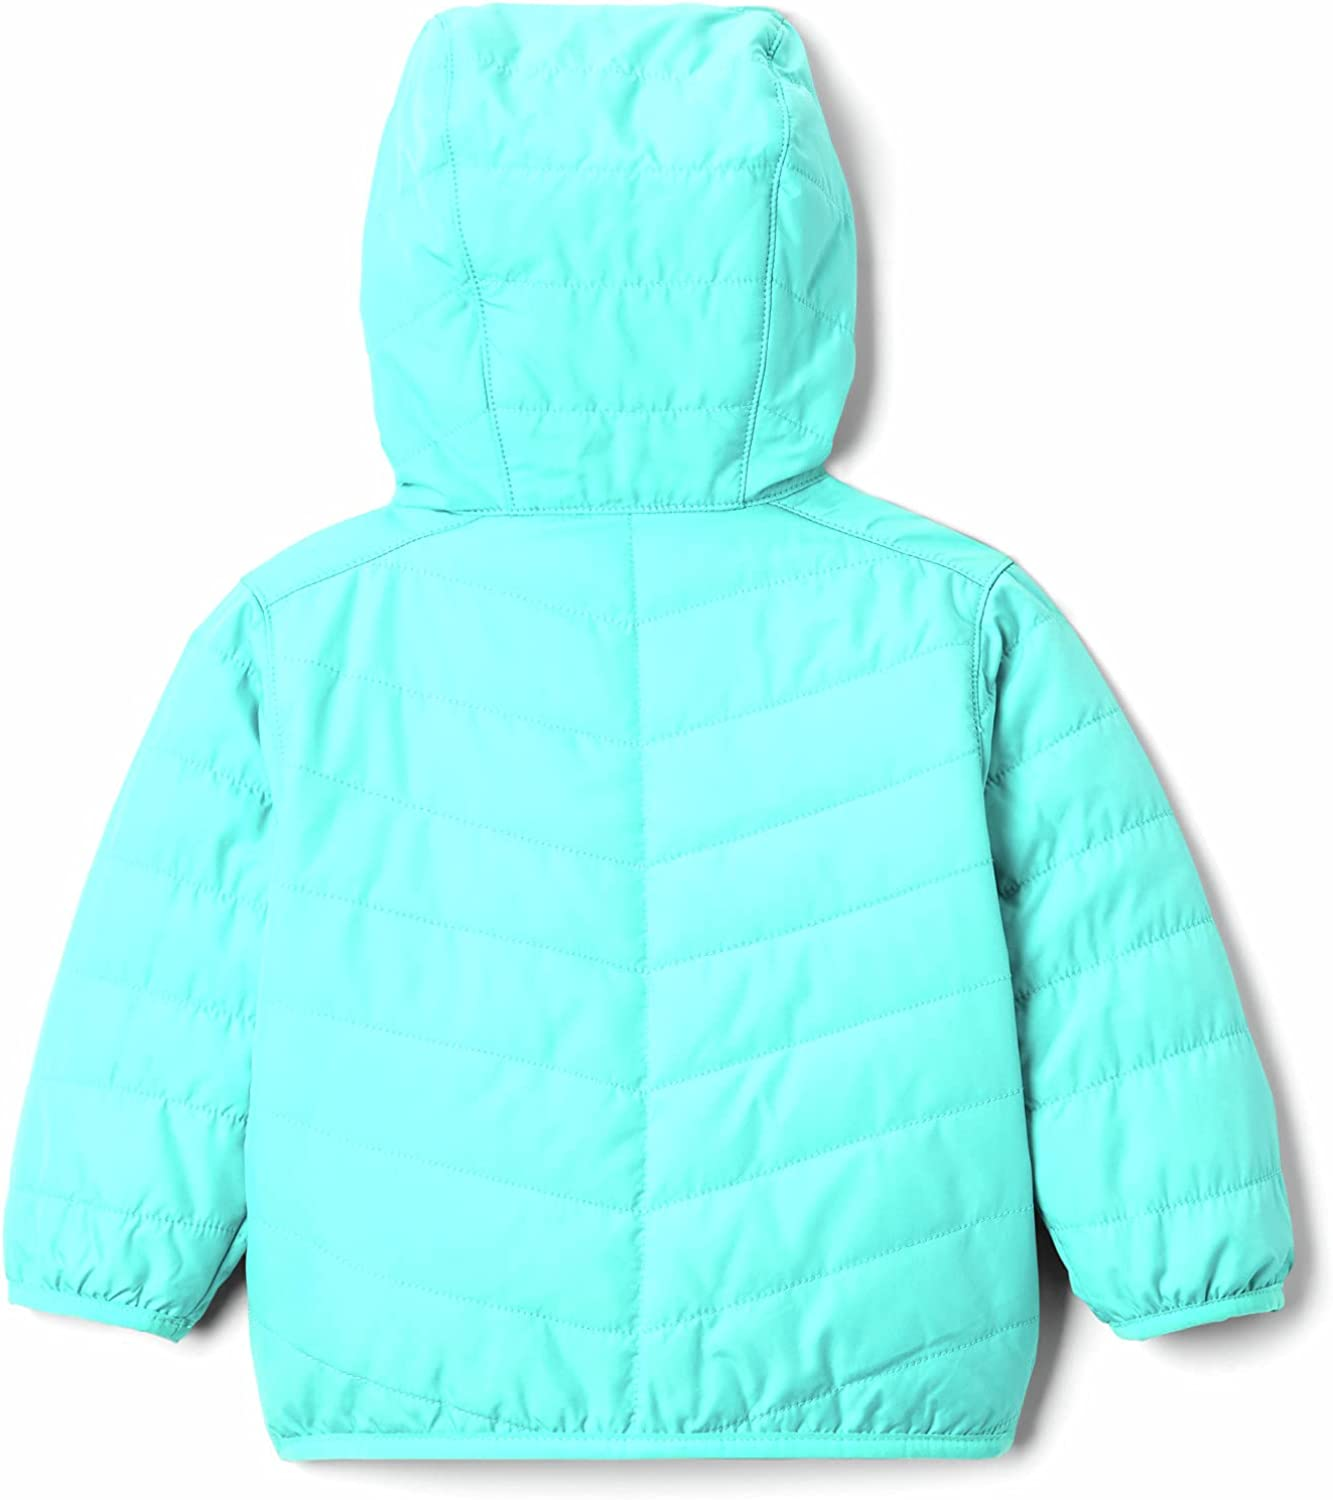 Columbia Youth Double Trouble Reversible Winter Jacket, Water repellent: Clothing